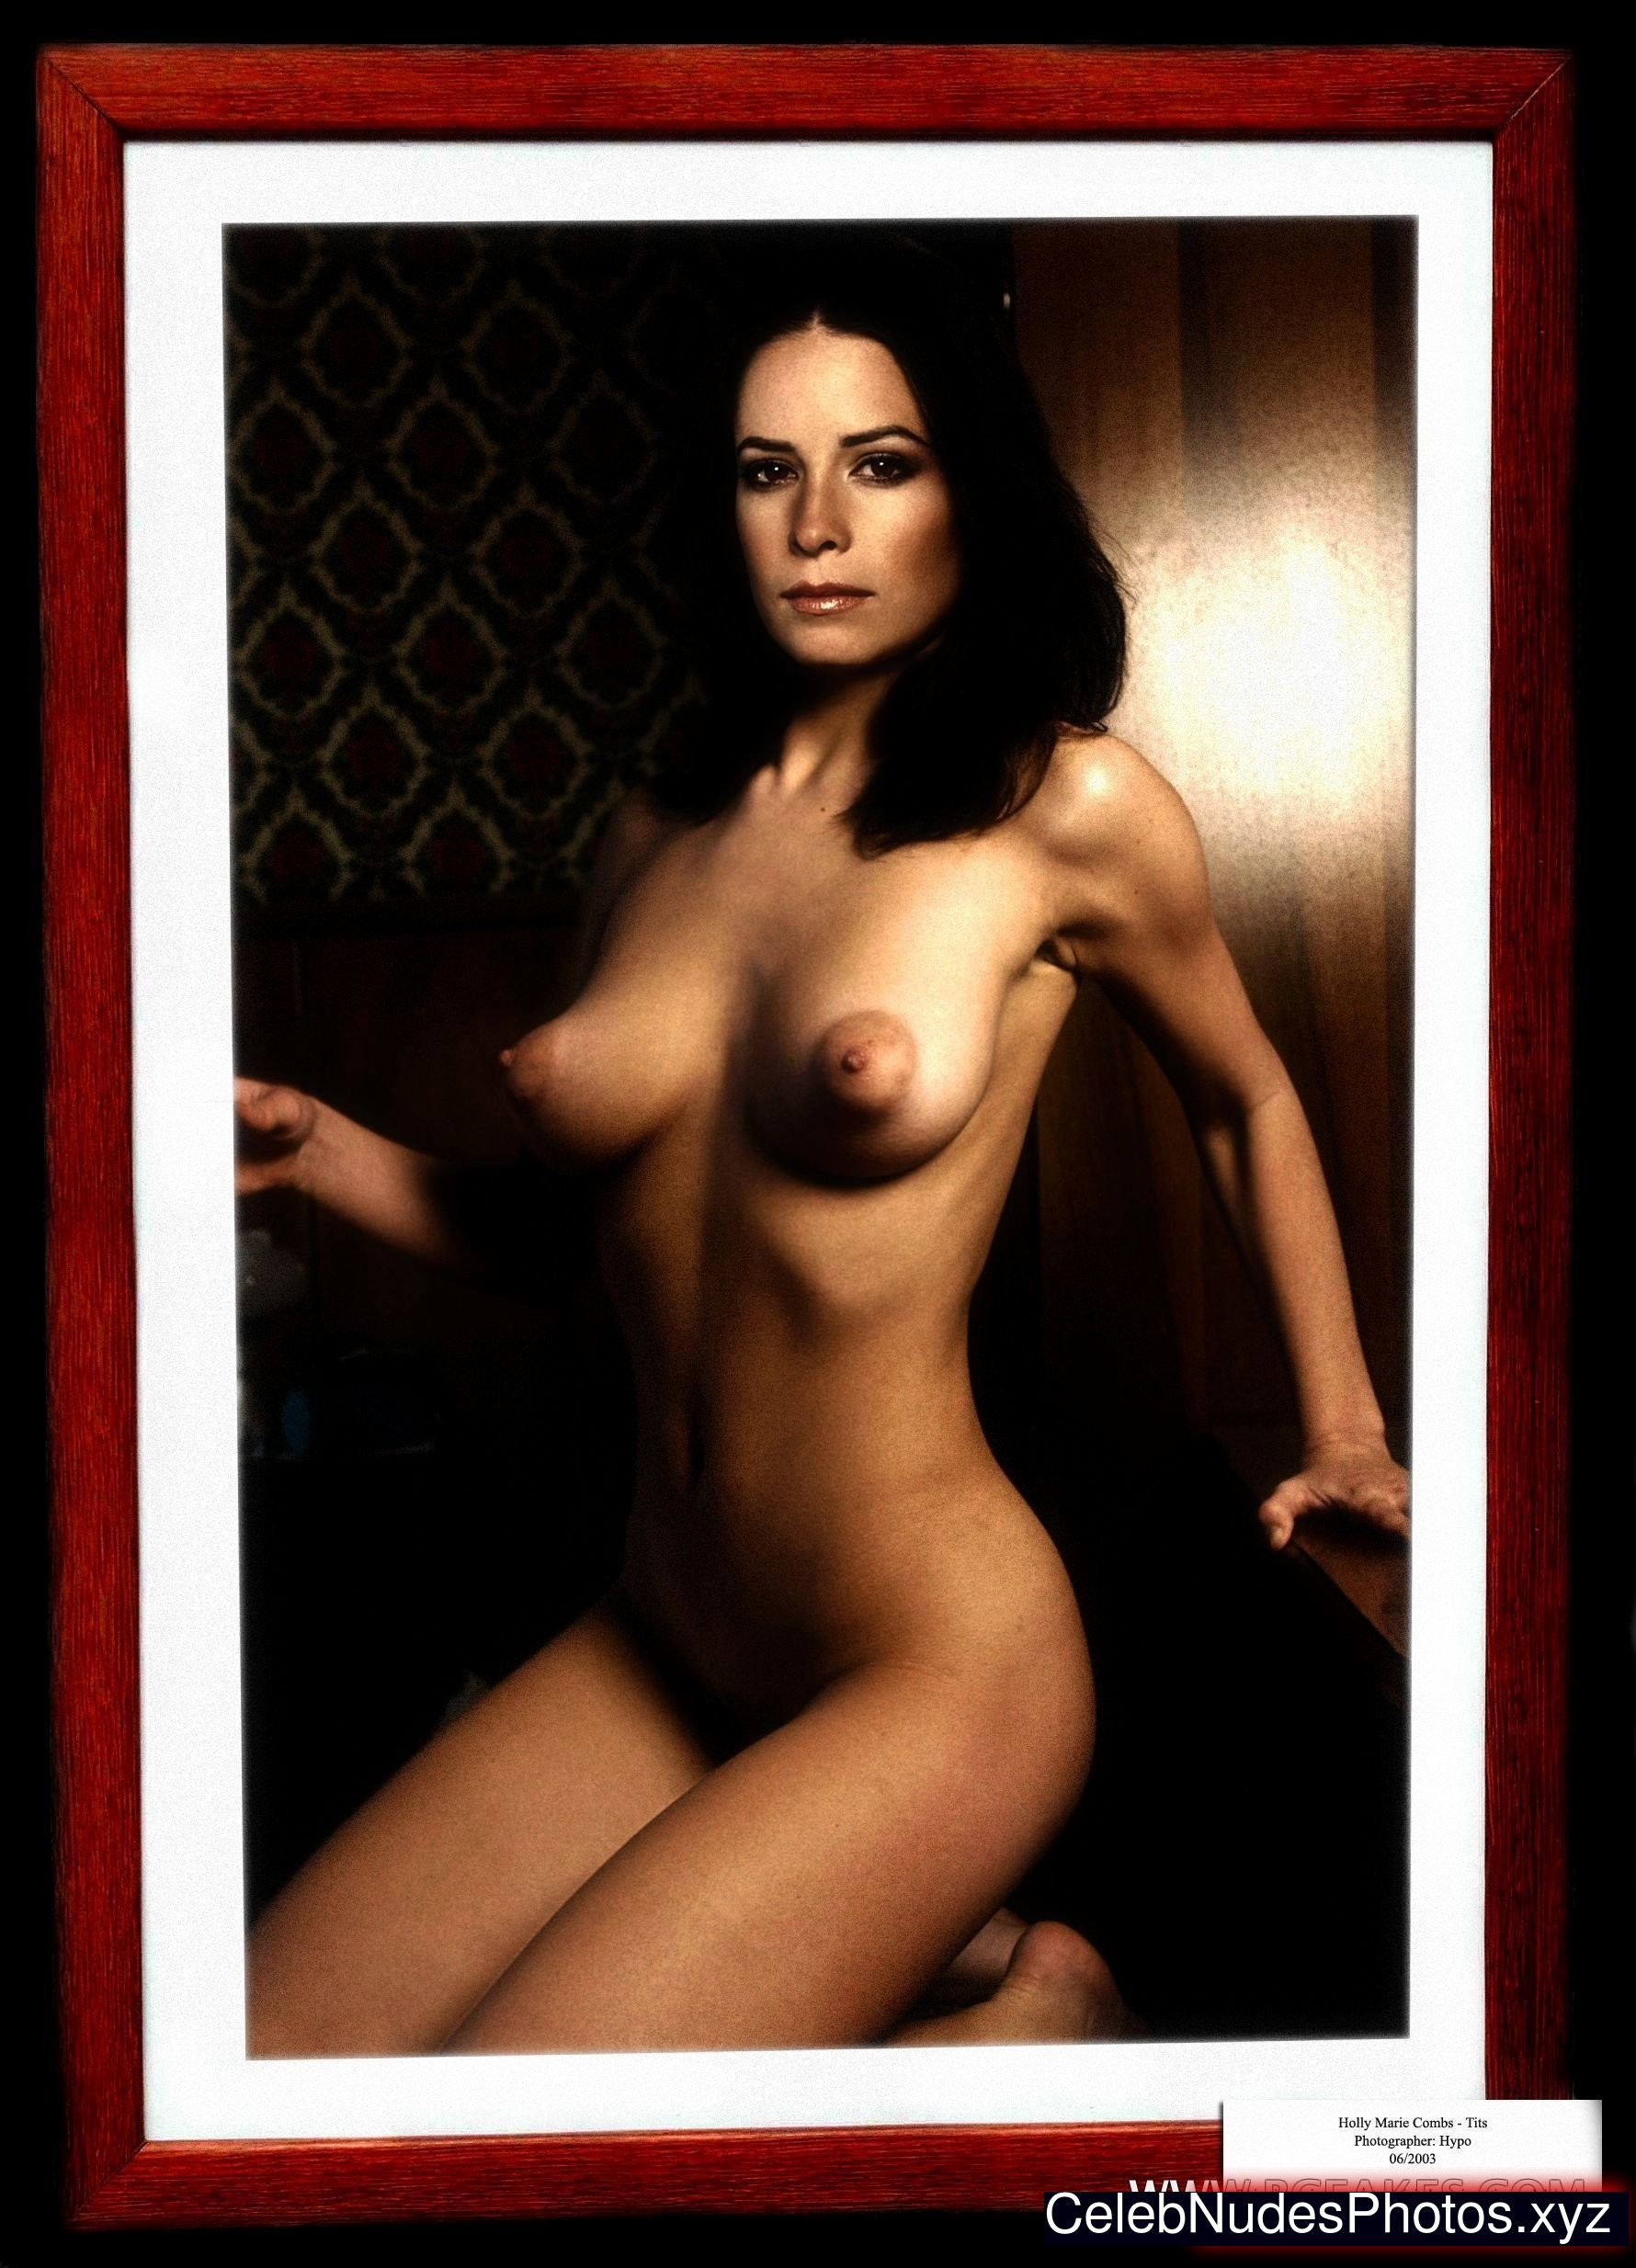 Naked pictures of holly marie combs